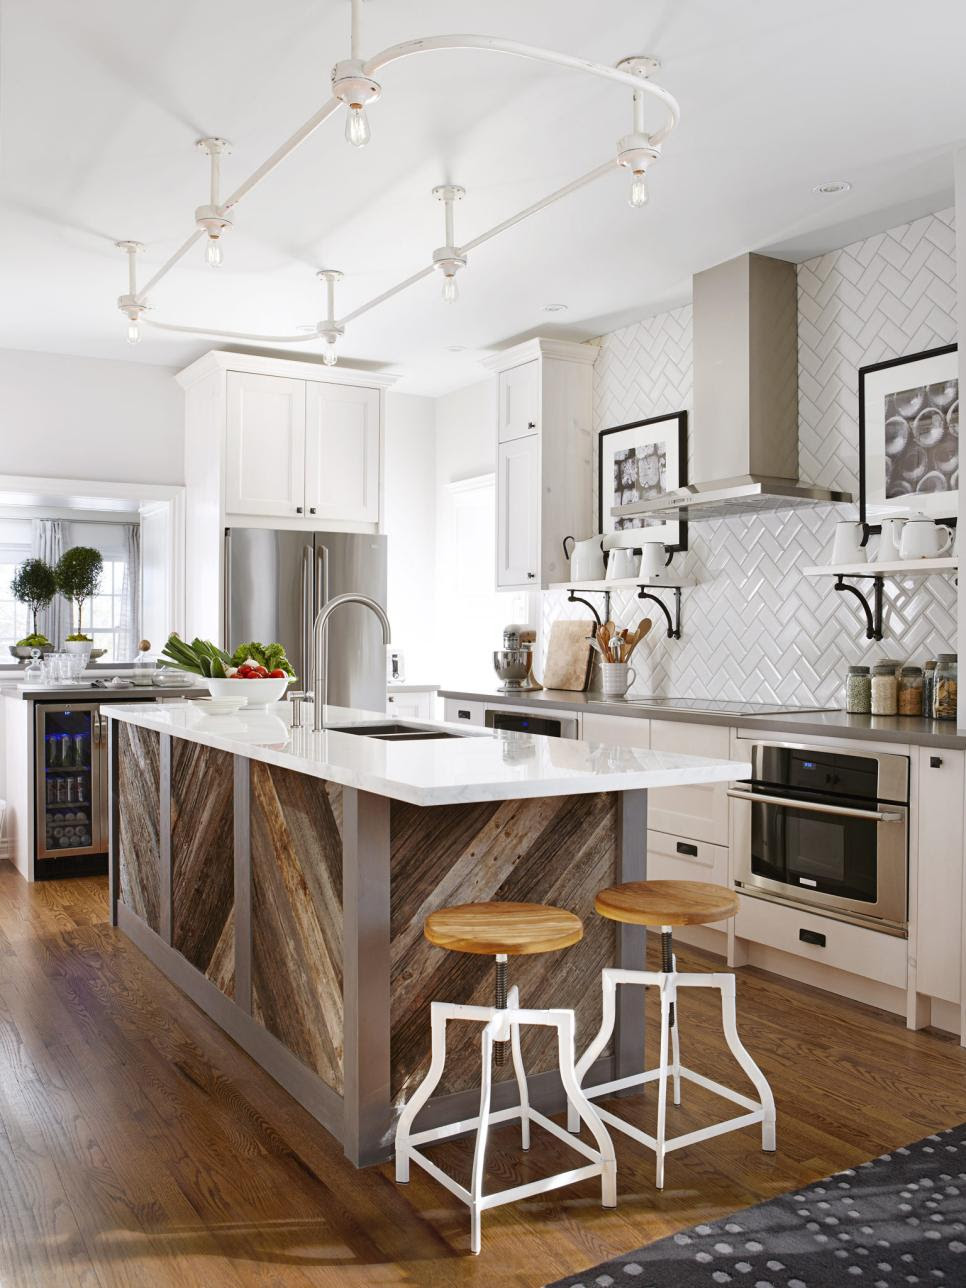 20 Dreamy Kitchen Islands | HGTV